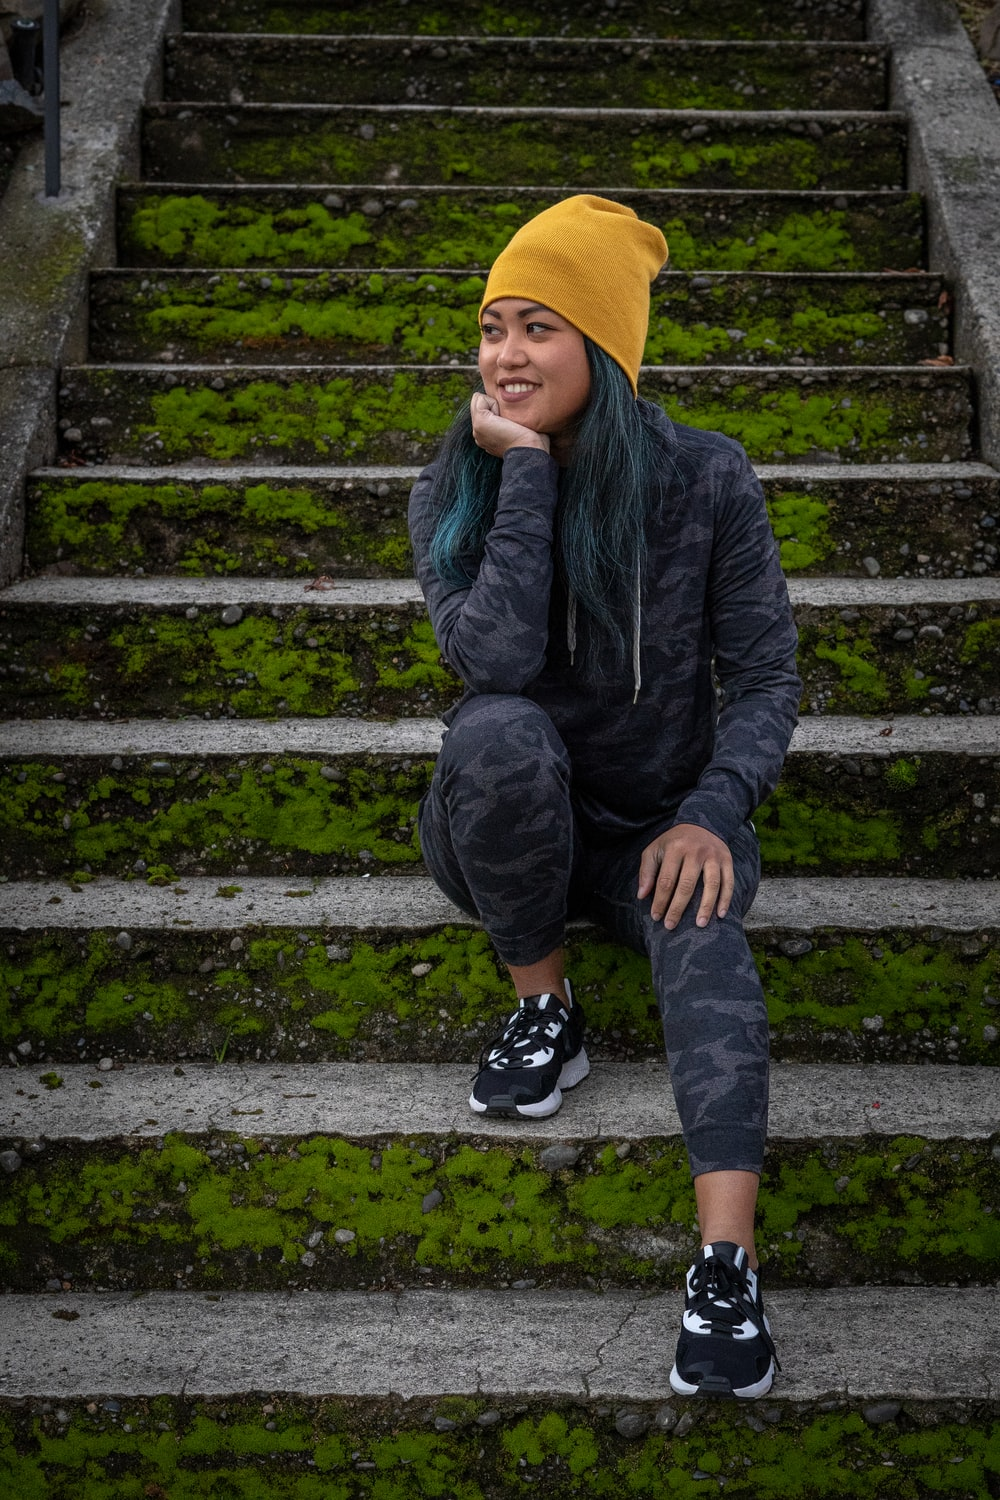 boy in black jacket and yellow knit cap sitting on concrete stairs